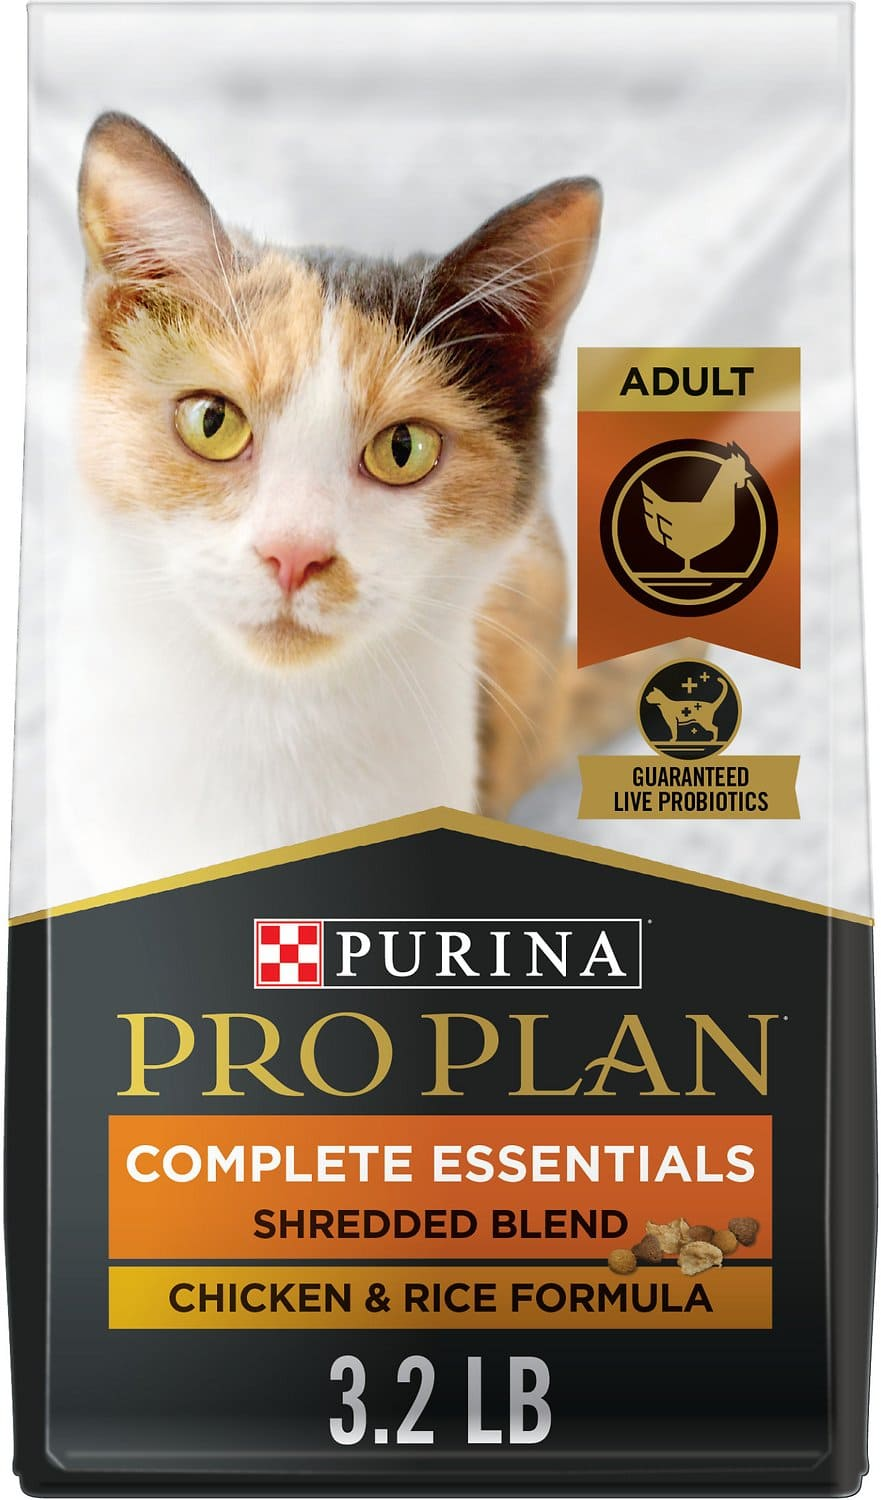 Purina Pro Plan Adult Complete Essentials Shredded Blend Formula for Cats 3.2 lbs Chicken & Rice 1